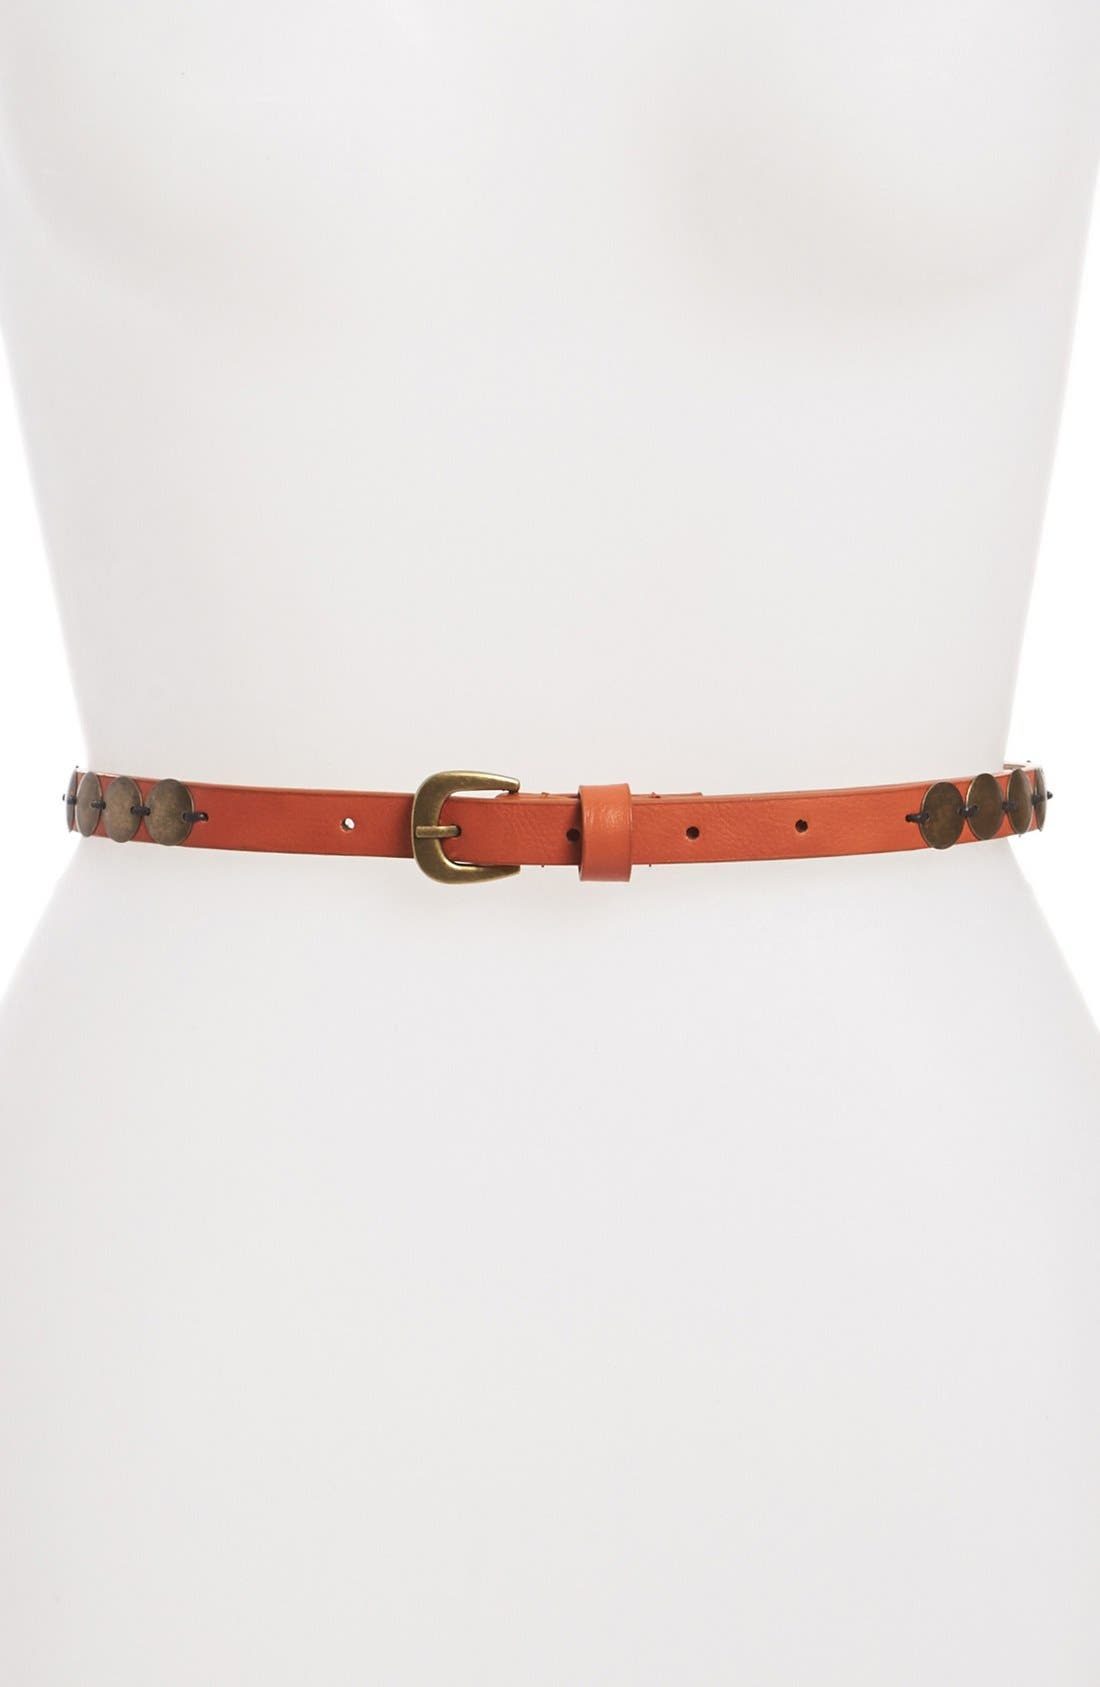 Alternate Image 1 Selected - Belgo Lux Studded Skinny  Belt